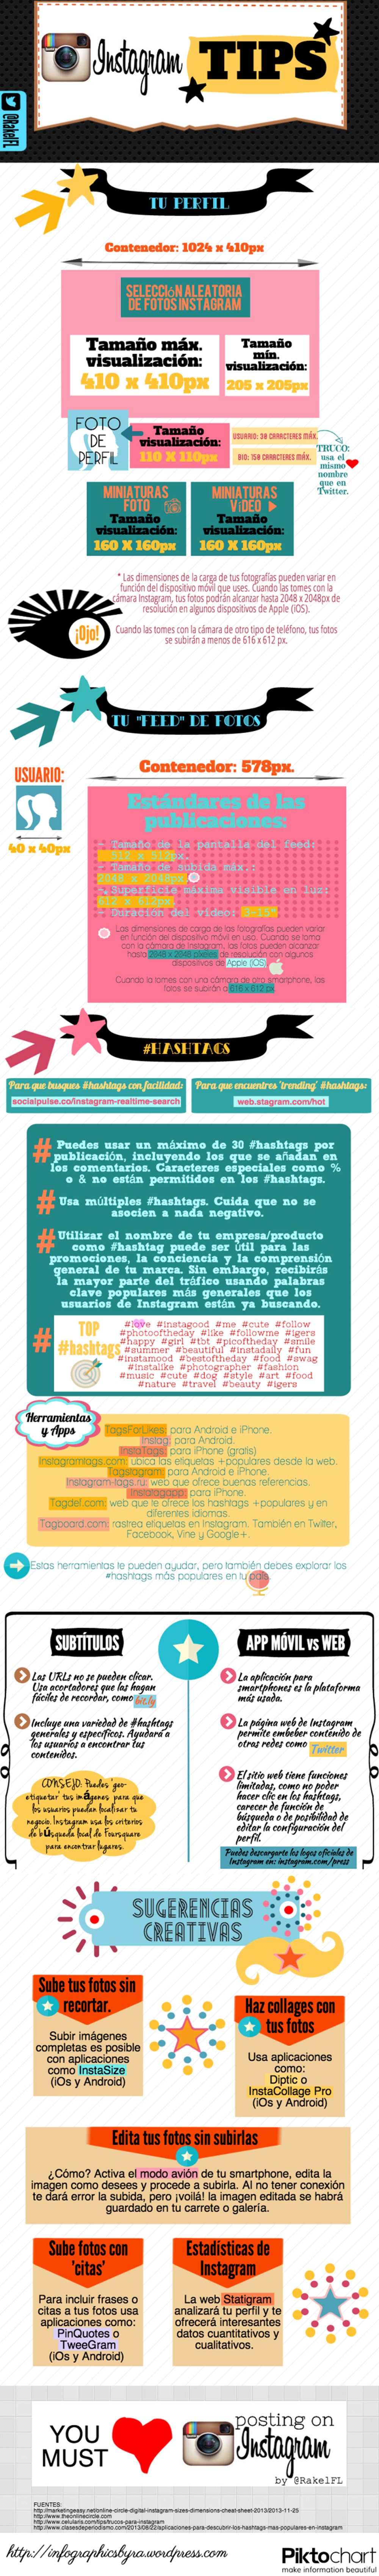 instagram-tips-infographic